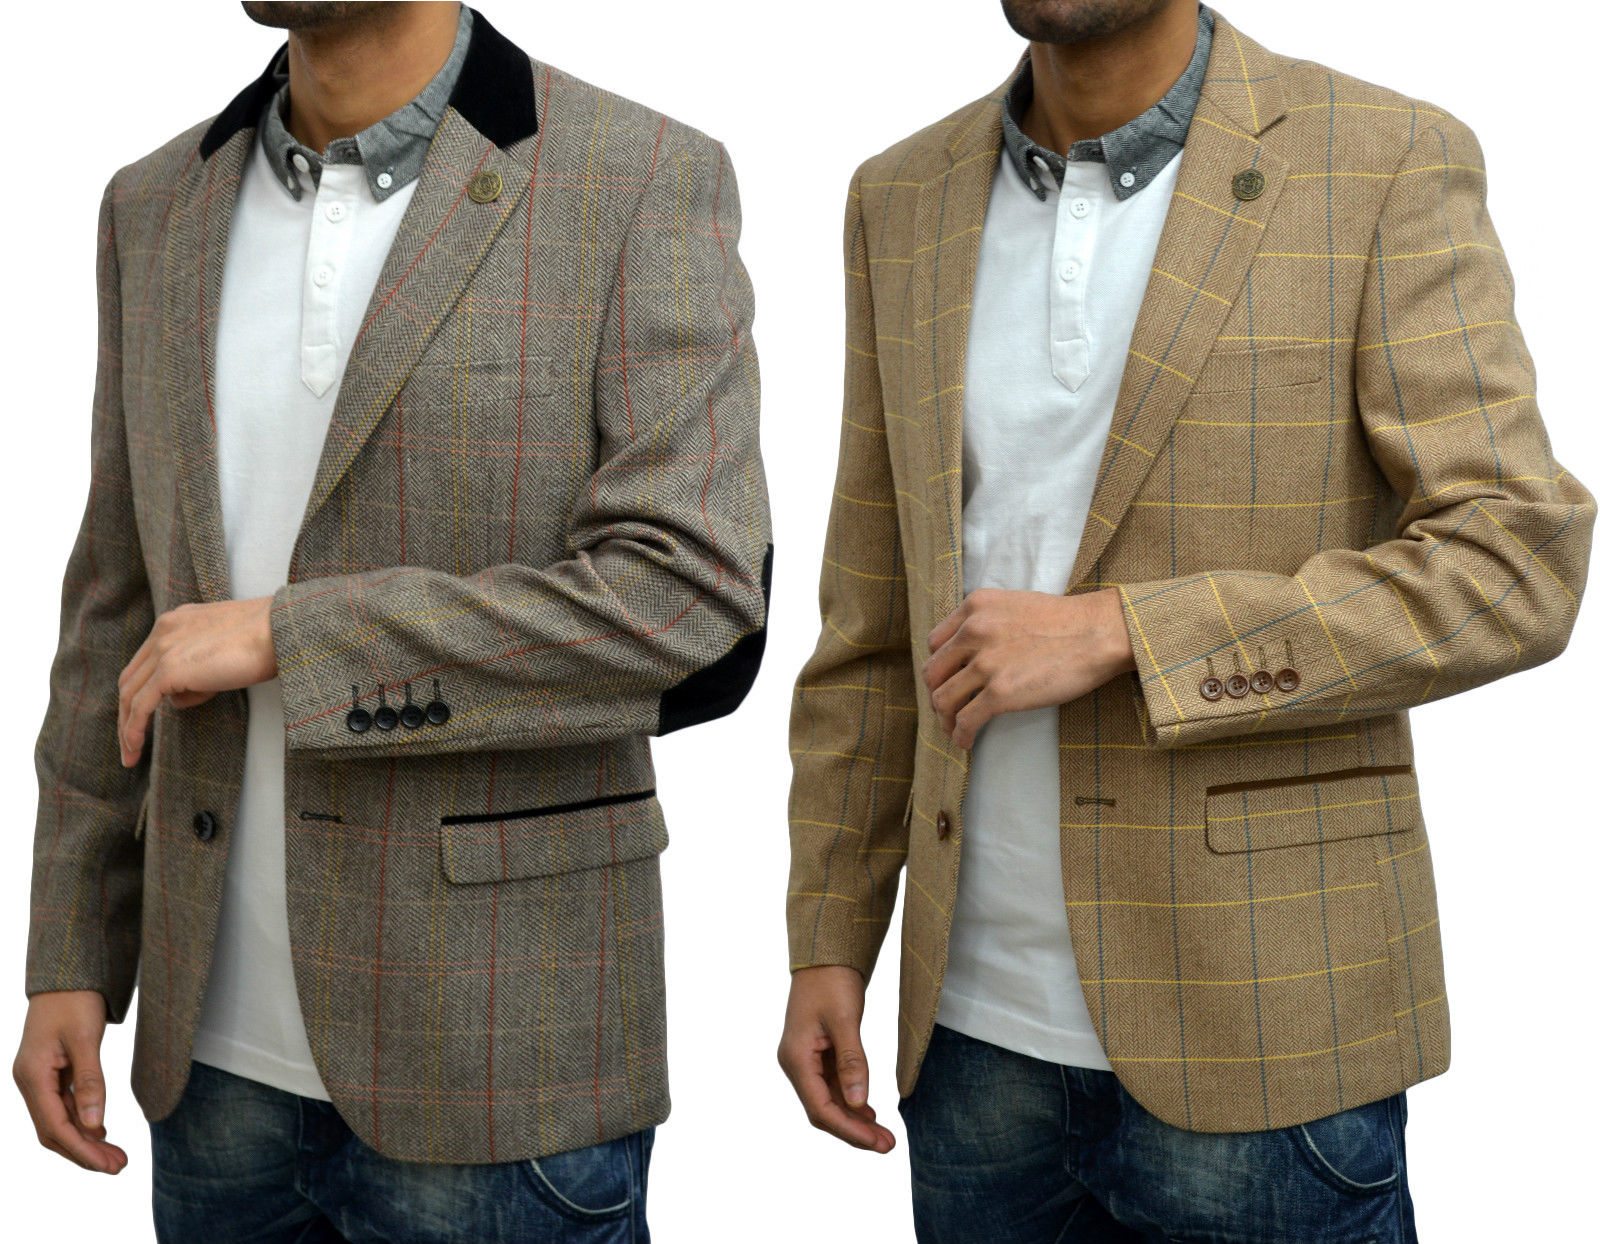 ᐅ Best Jackets For Men Reviews Compare Now